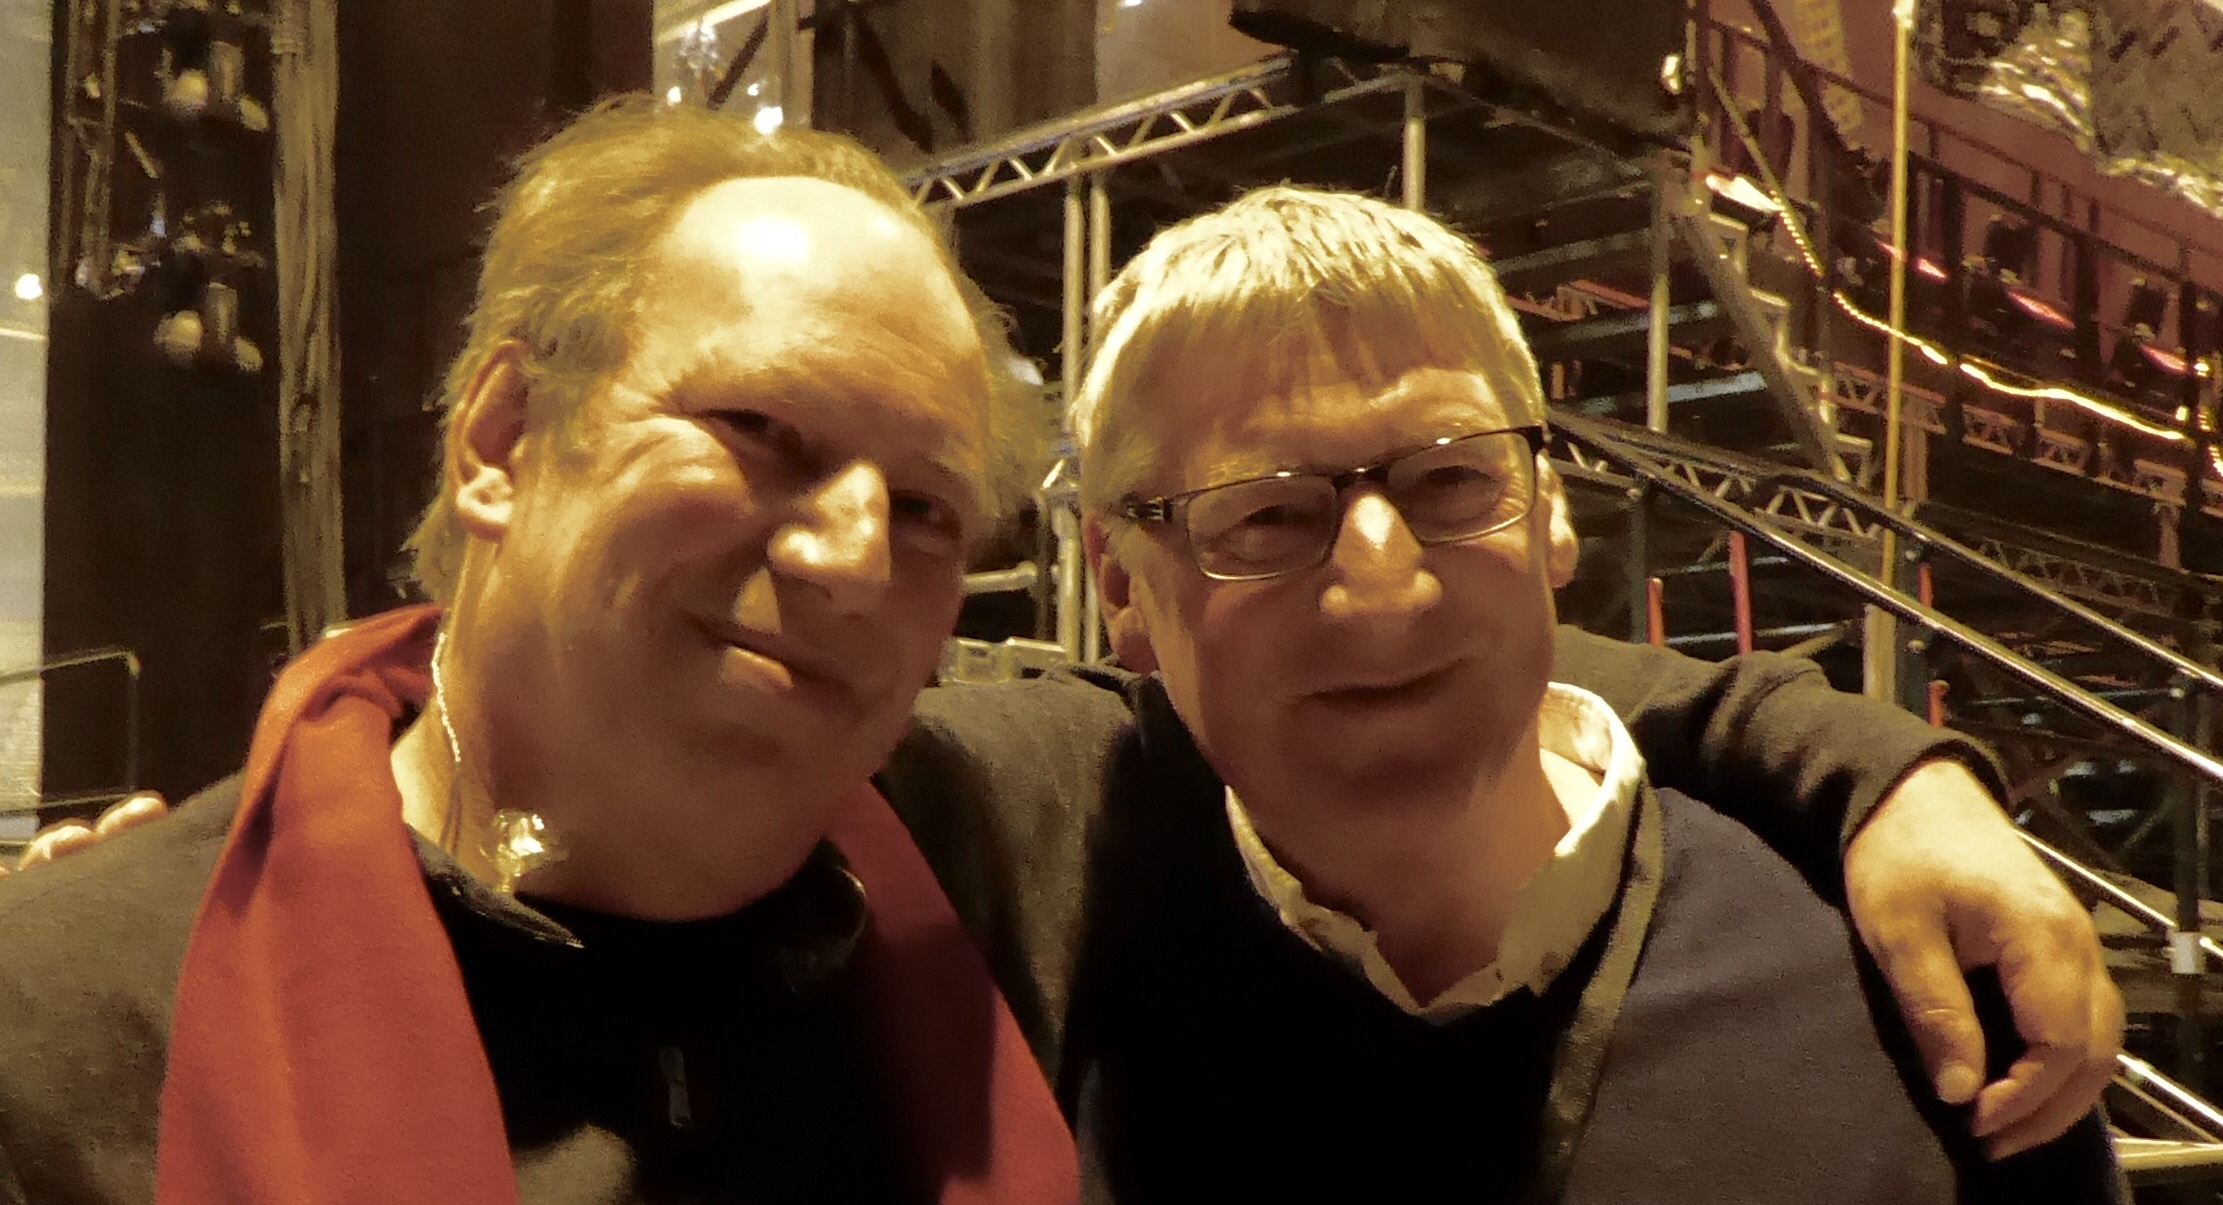 With composer Hans Zimmer on tour